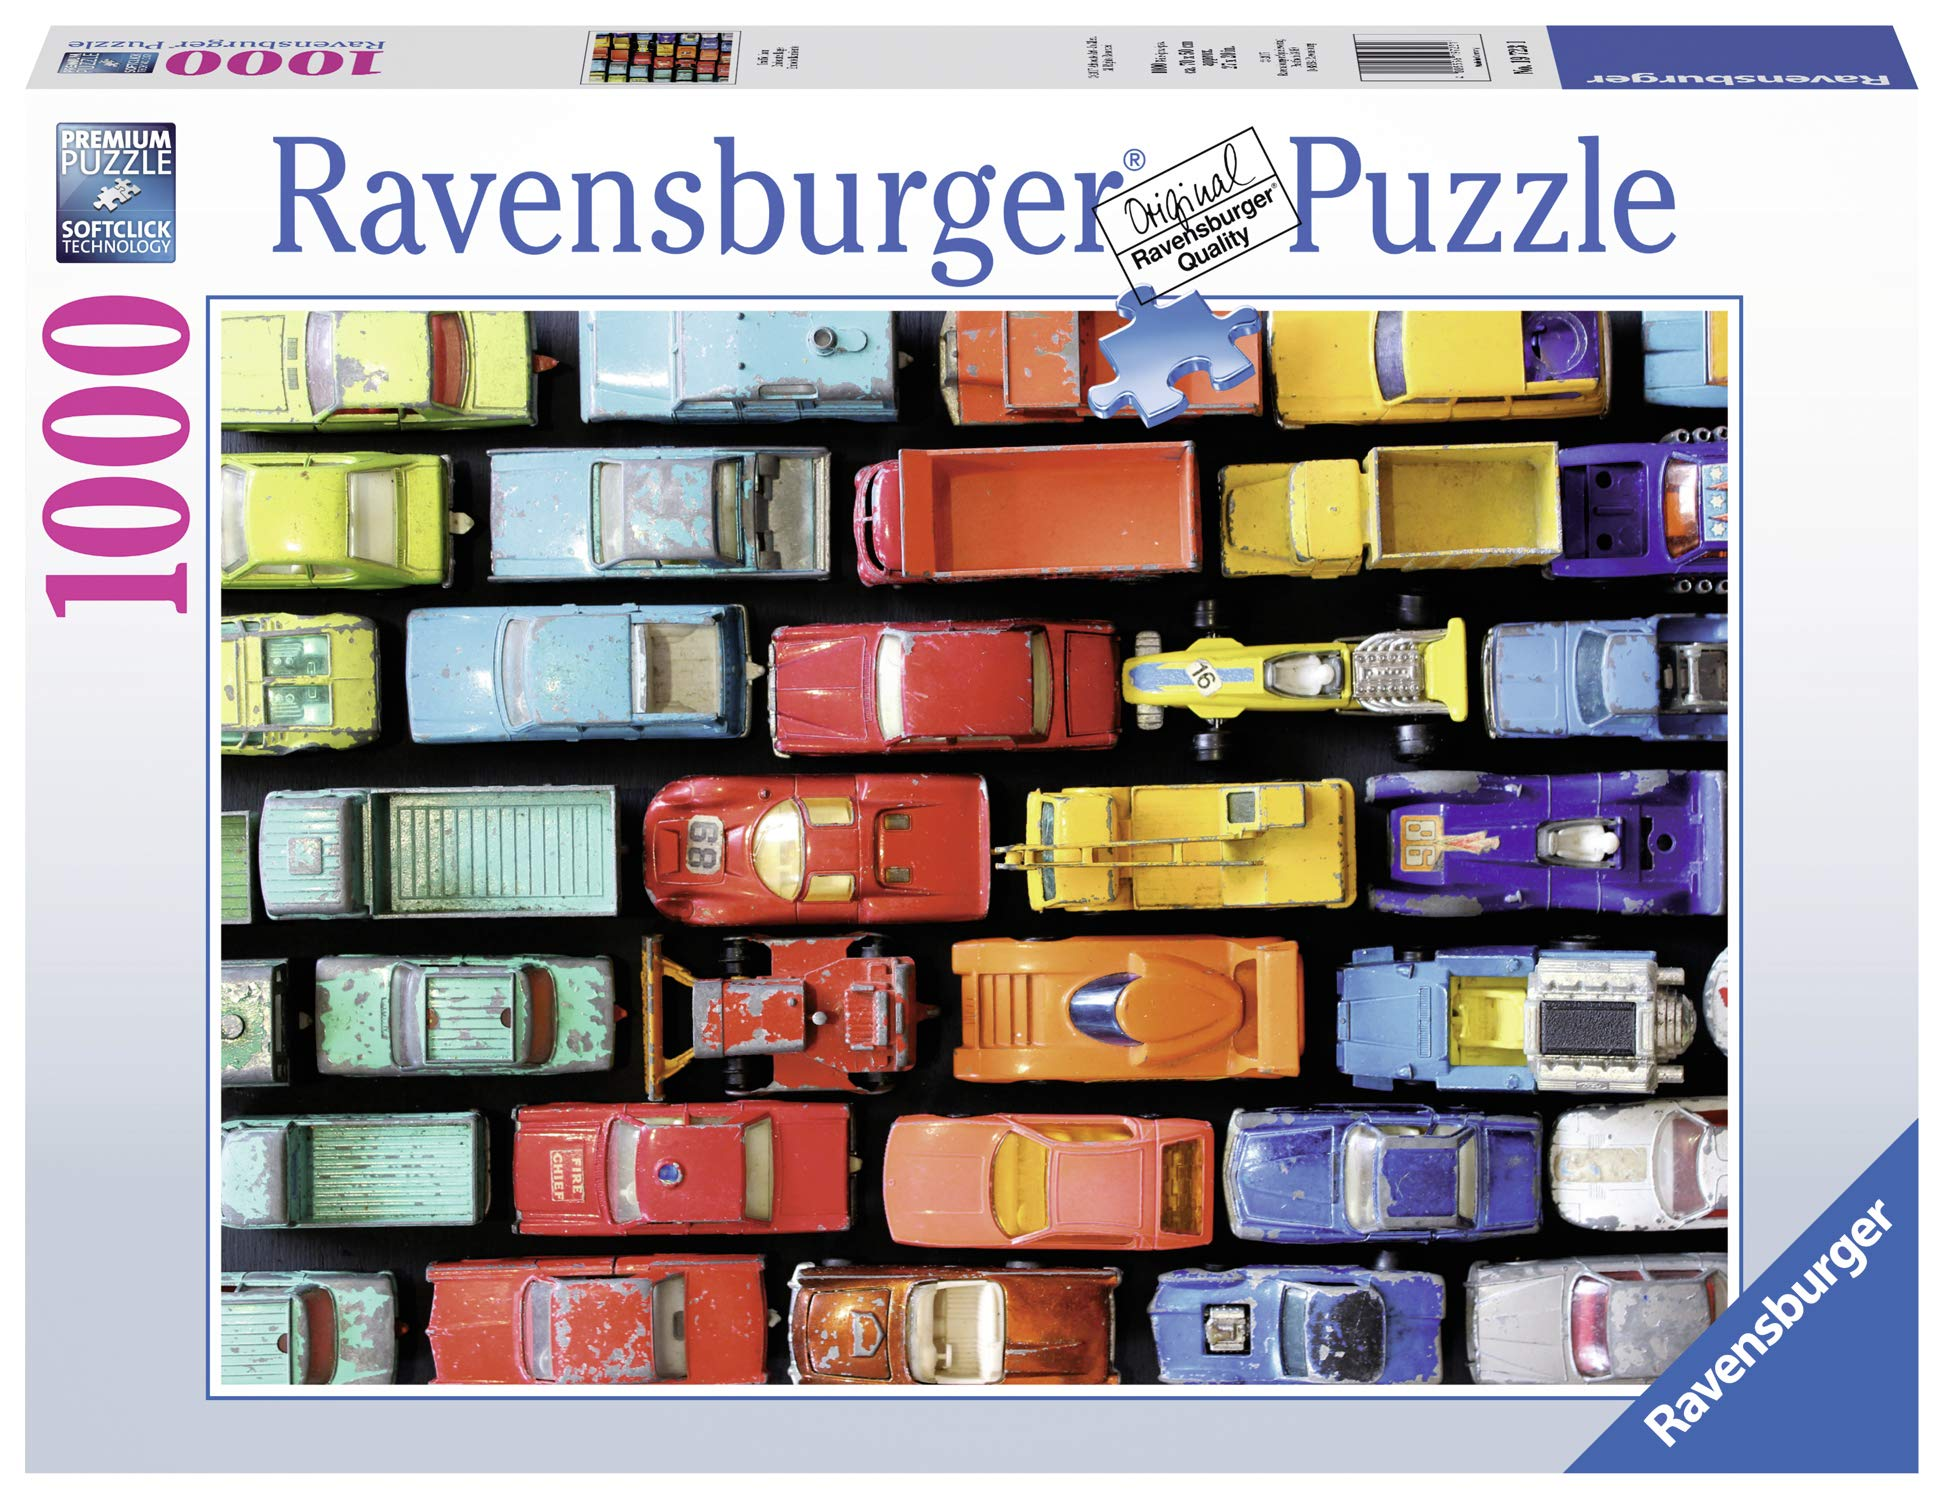 Ravensburger Traffic Jam 1000 Piece Jigsaw Puzzle for Adults - Every Piece is Unique, Softclick Technology Means Pieces Fit Together Perfectly by Ravensburger